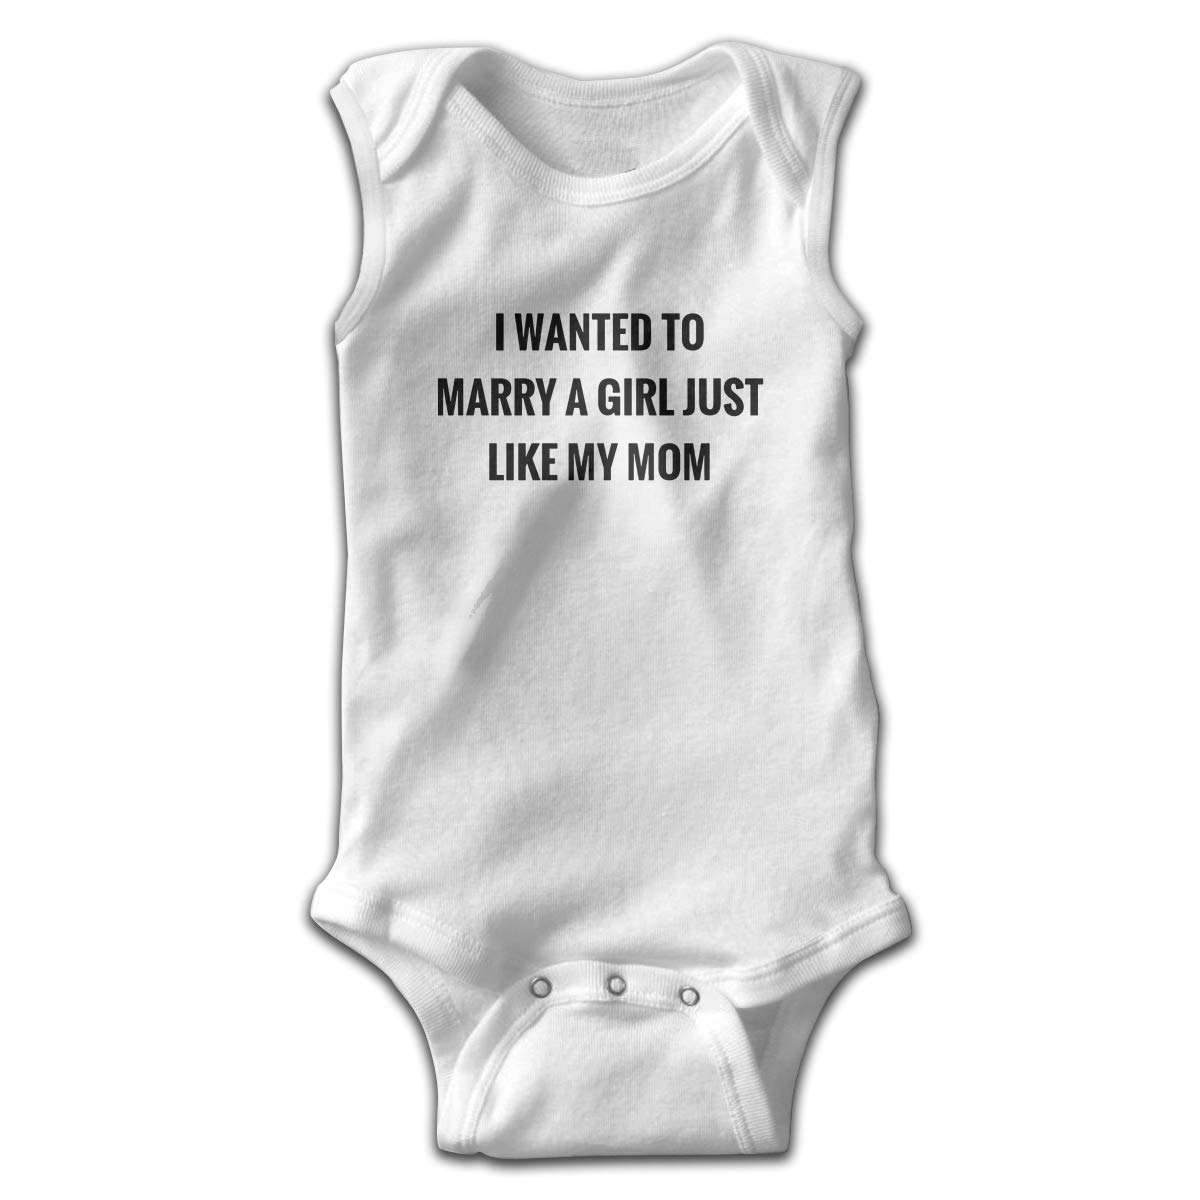 I Wanted to Marry A Girl Just Like My Mom Toddler Baby Clothes Bodysuit Sleeveless Summer for Baby